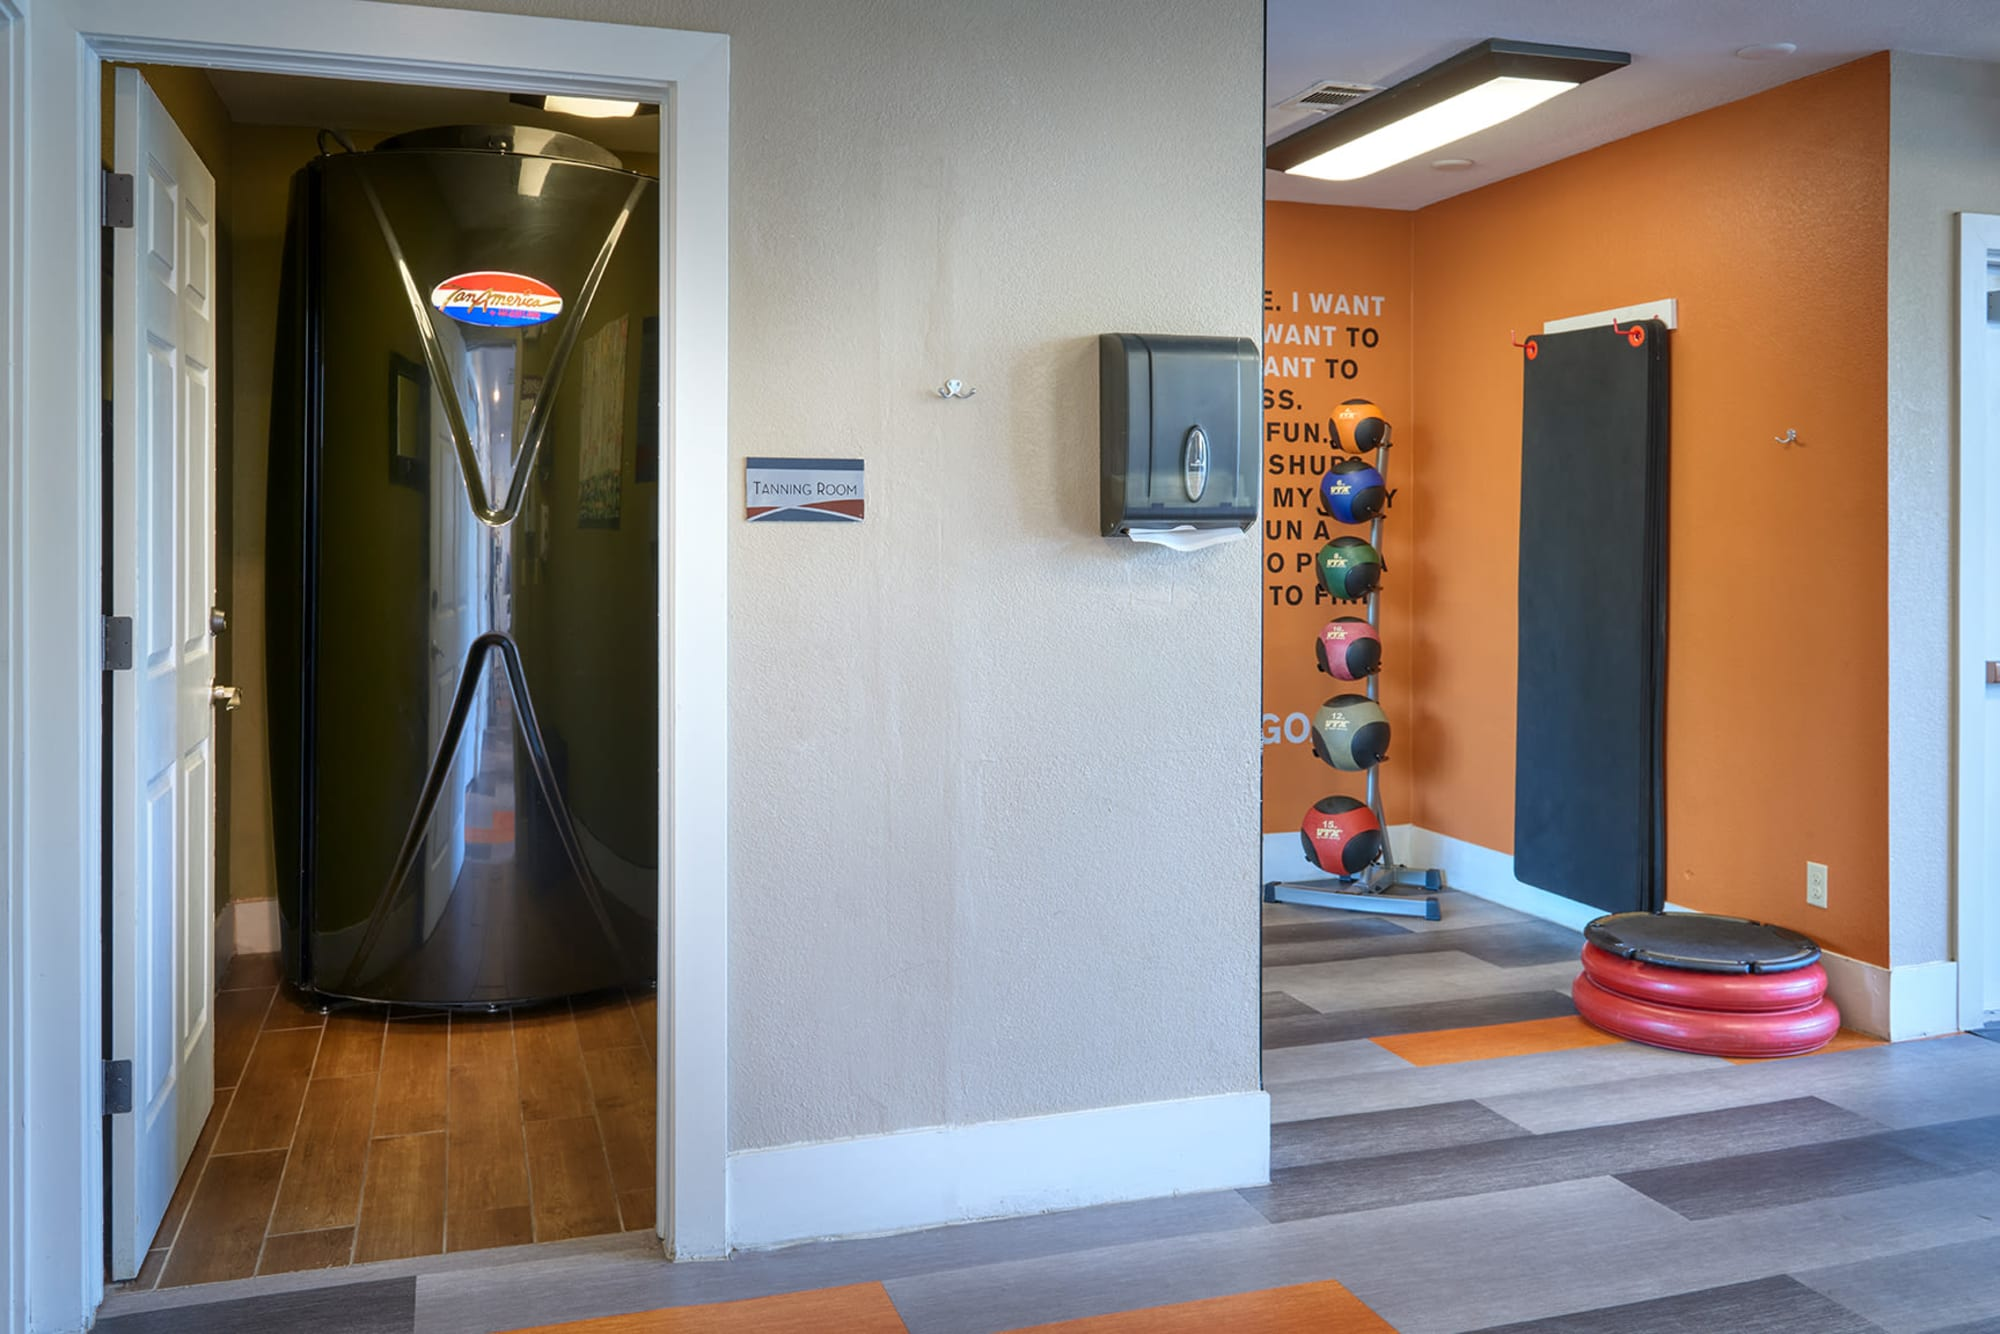 The tanning bed room at The Crossings at Bear Creek Apartments in Lakewood, Colorado